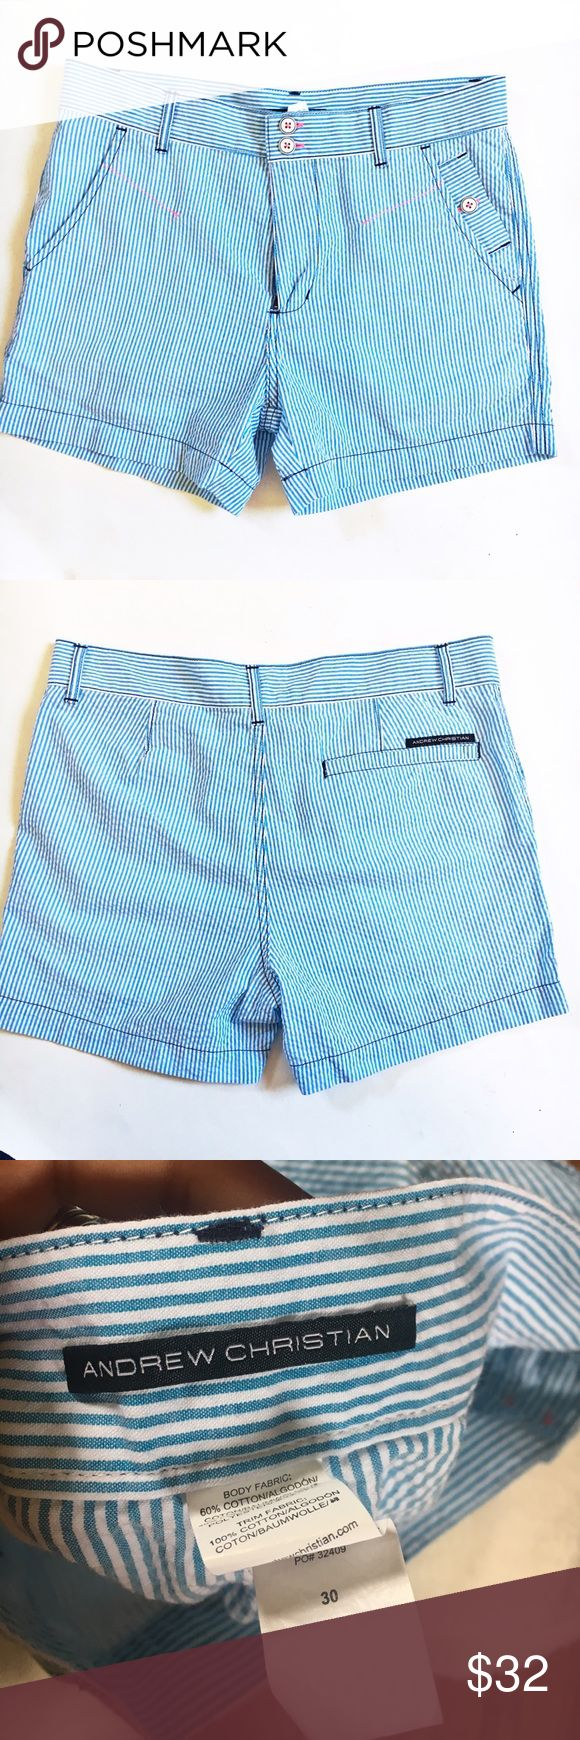 Christian Andrew blue and white striped shorts These shorts are in great condition and ready for your closet! Approx measurements are: waist 30 inches length 14 inches inseam  4 inches Andrew Christian Shorts